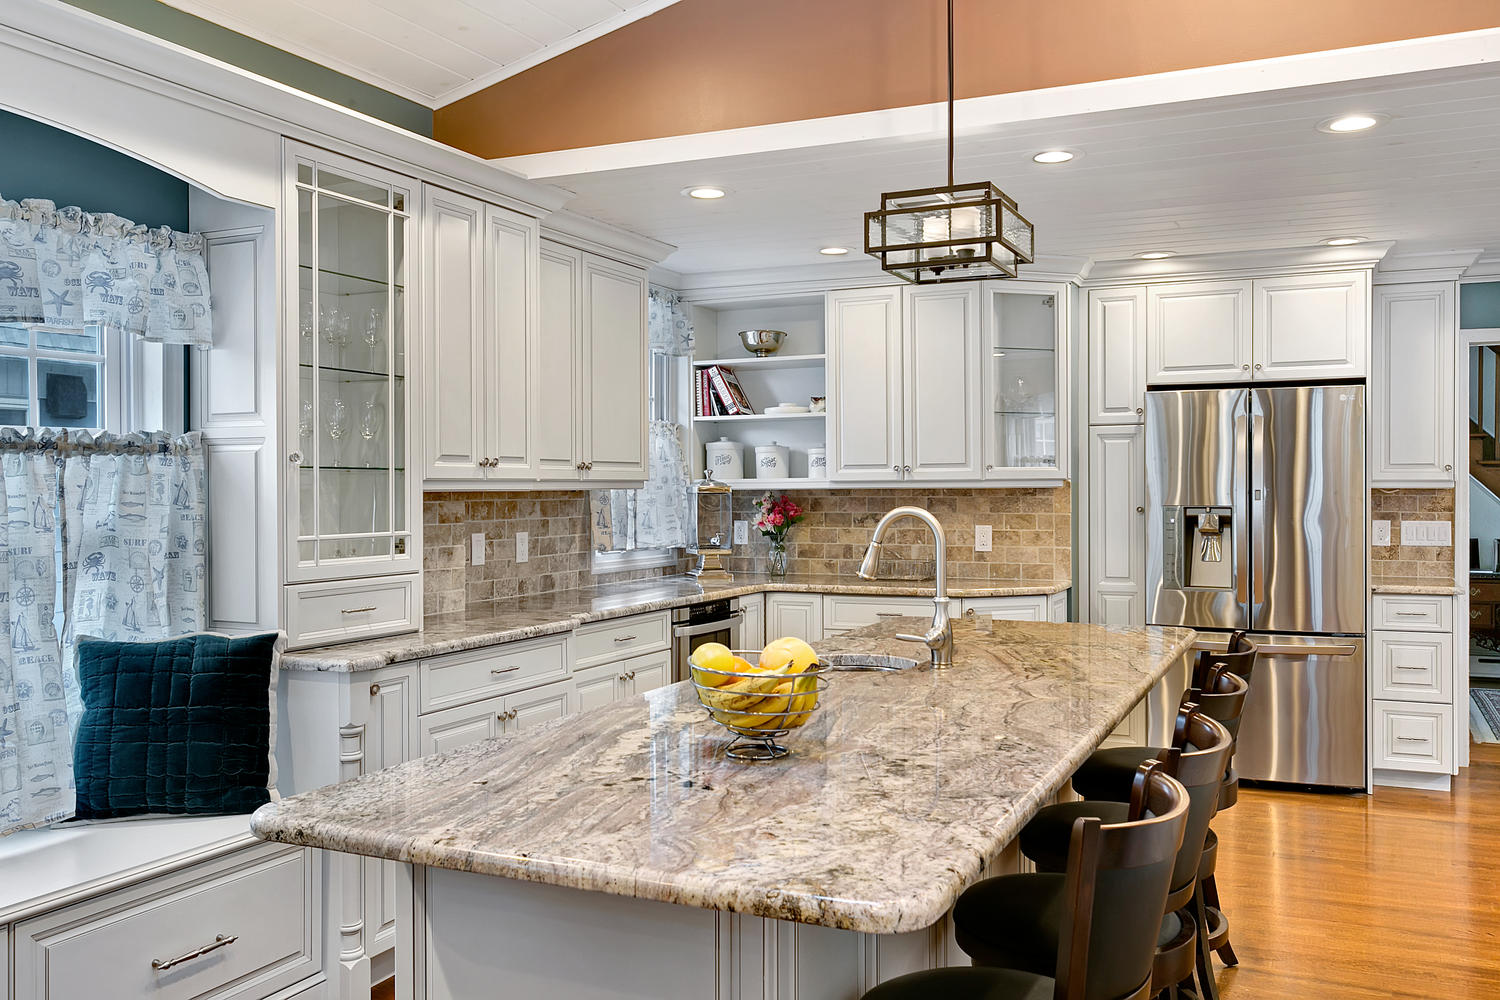 Bungalow Kitchen Beach Bungalow Kitchen Belmar New Jersey By Design Line Kitchens